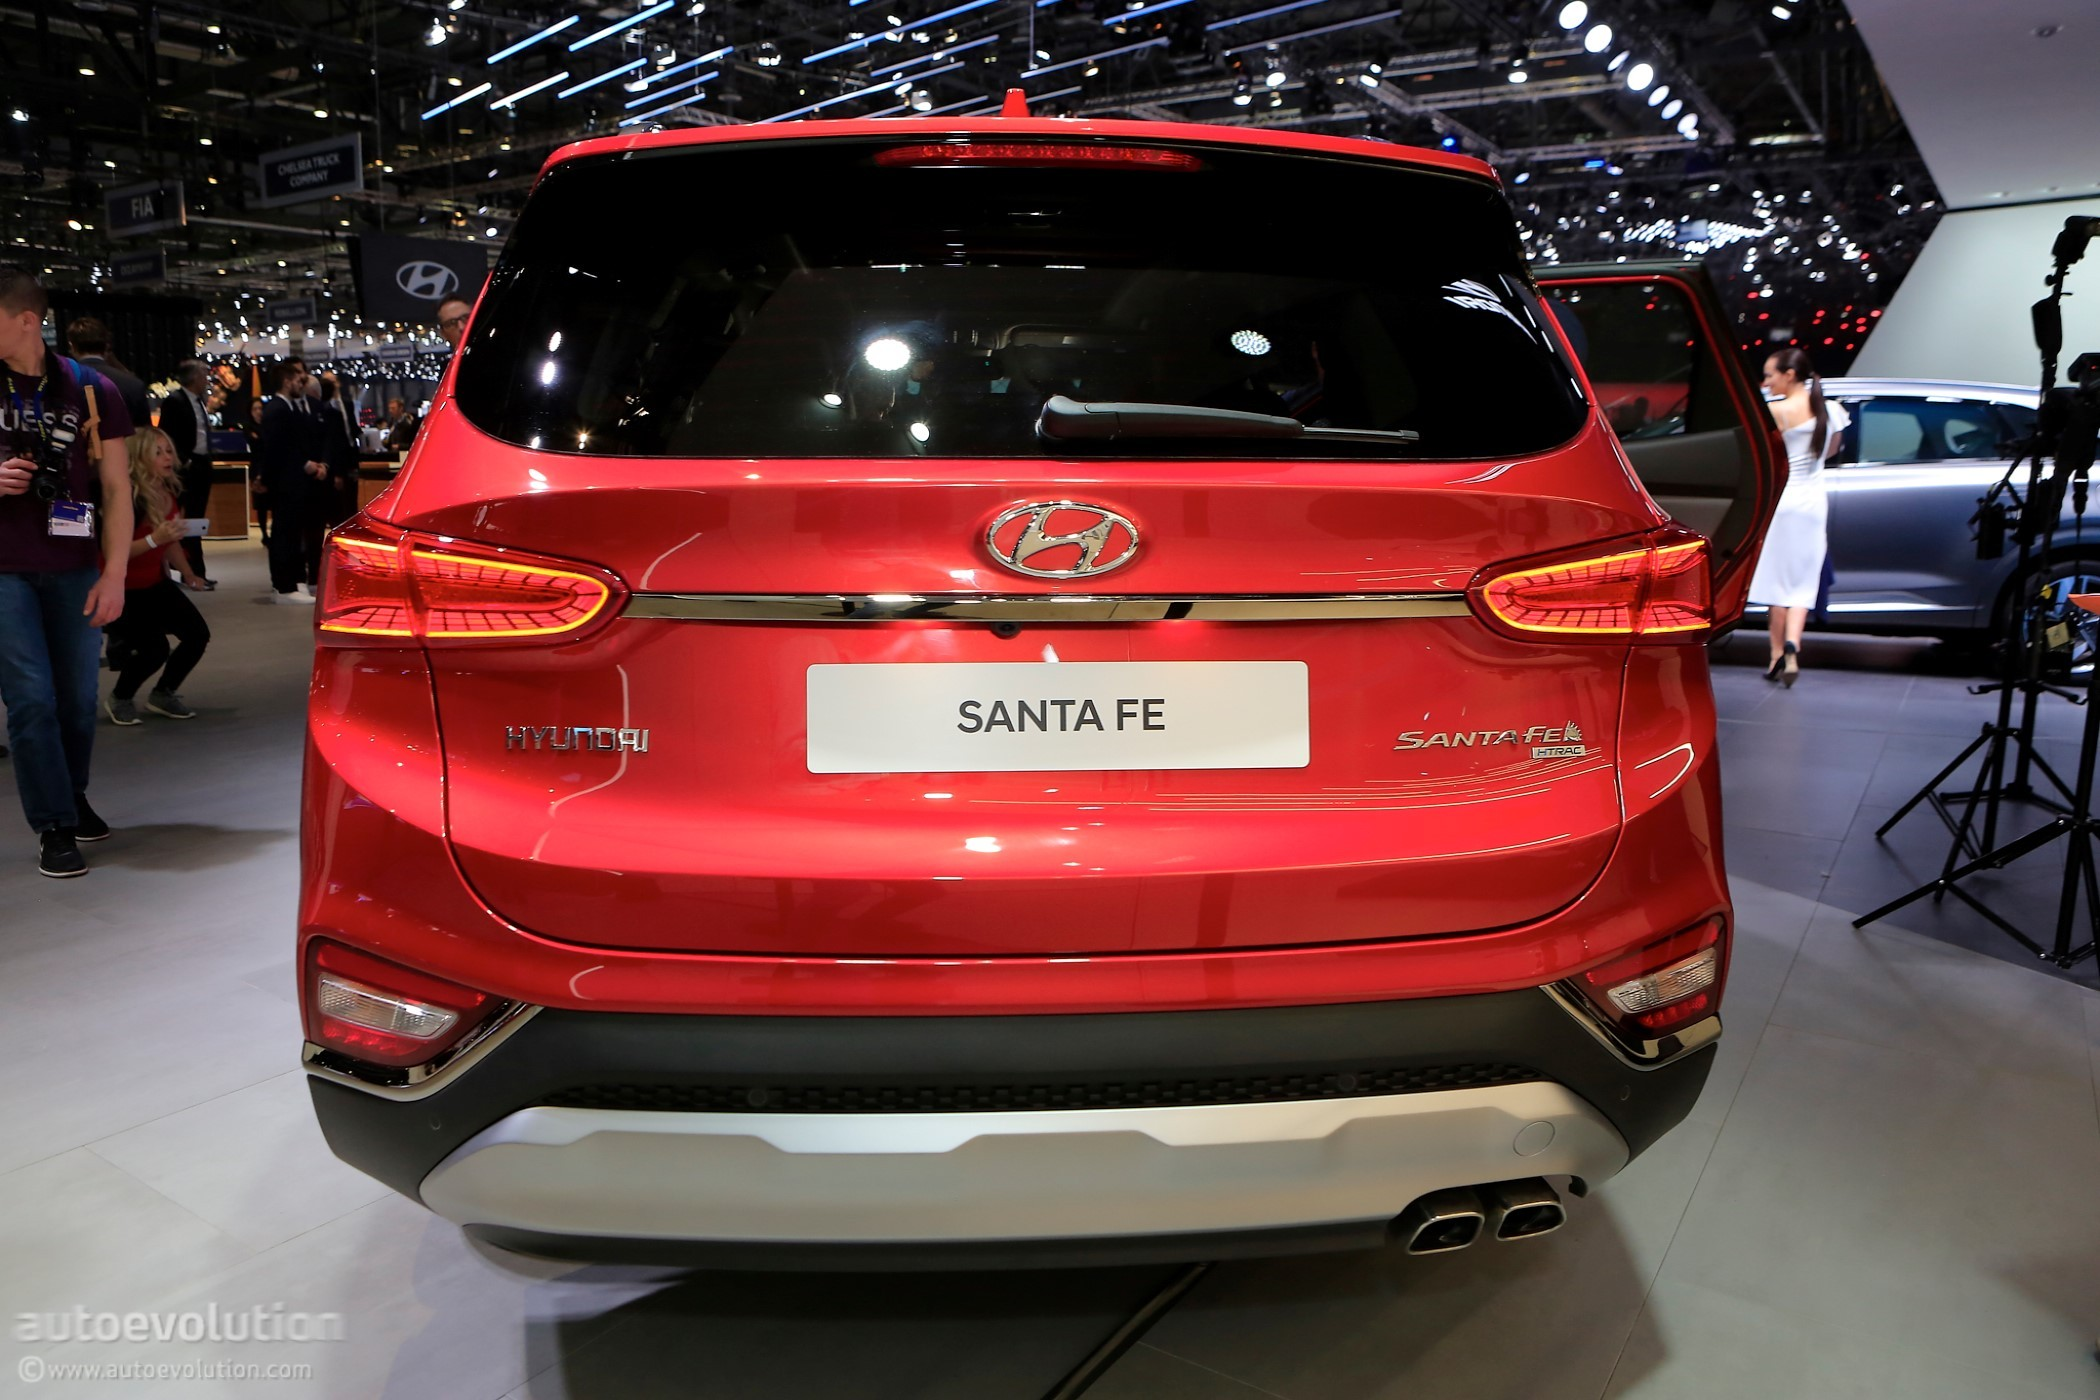 2019 Hyundai Santa Fe Brags With Best-In-Class Safety